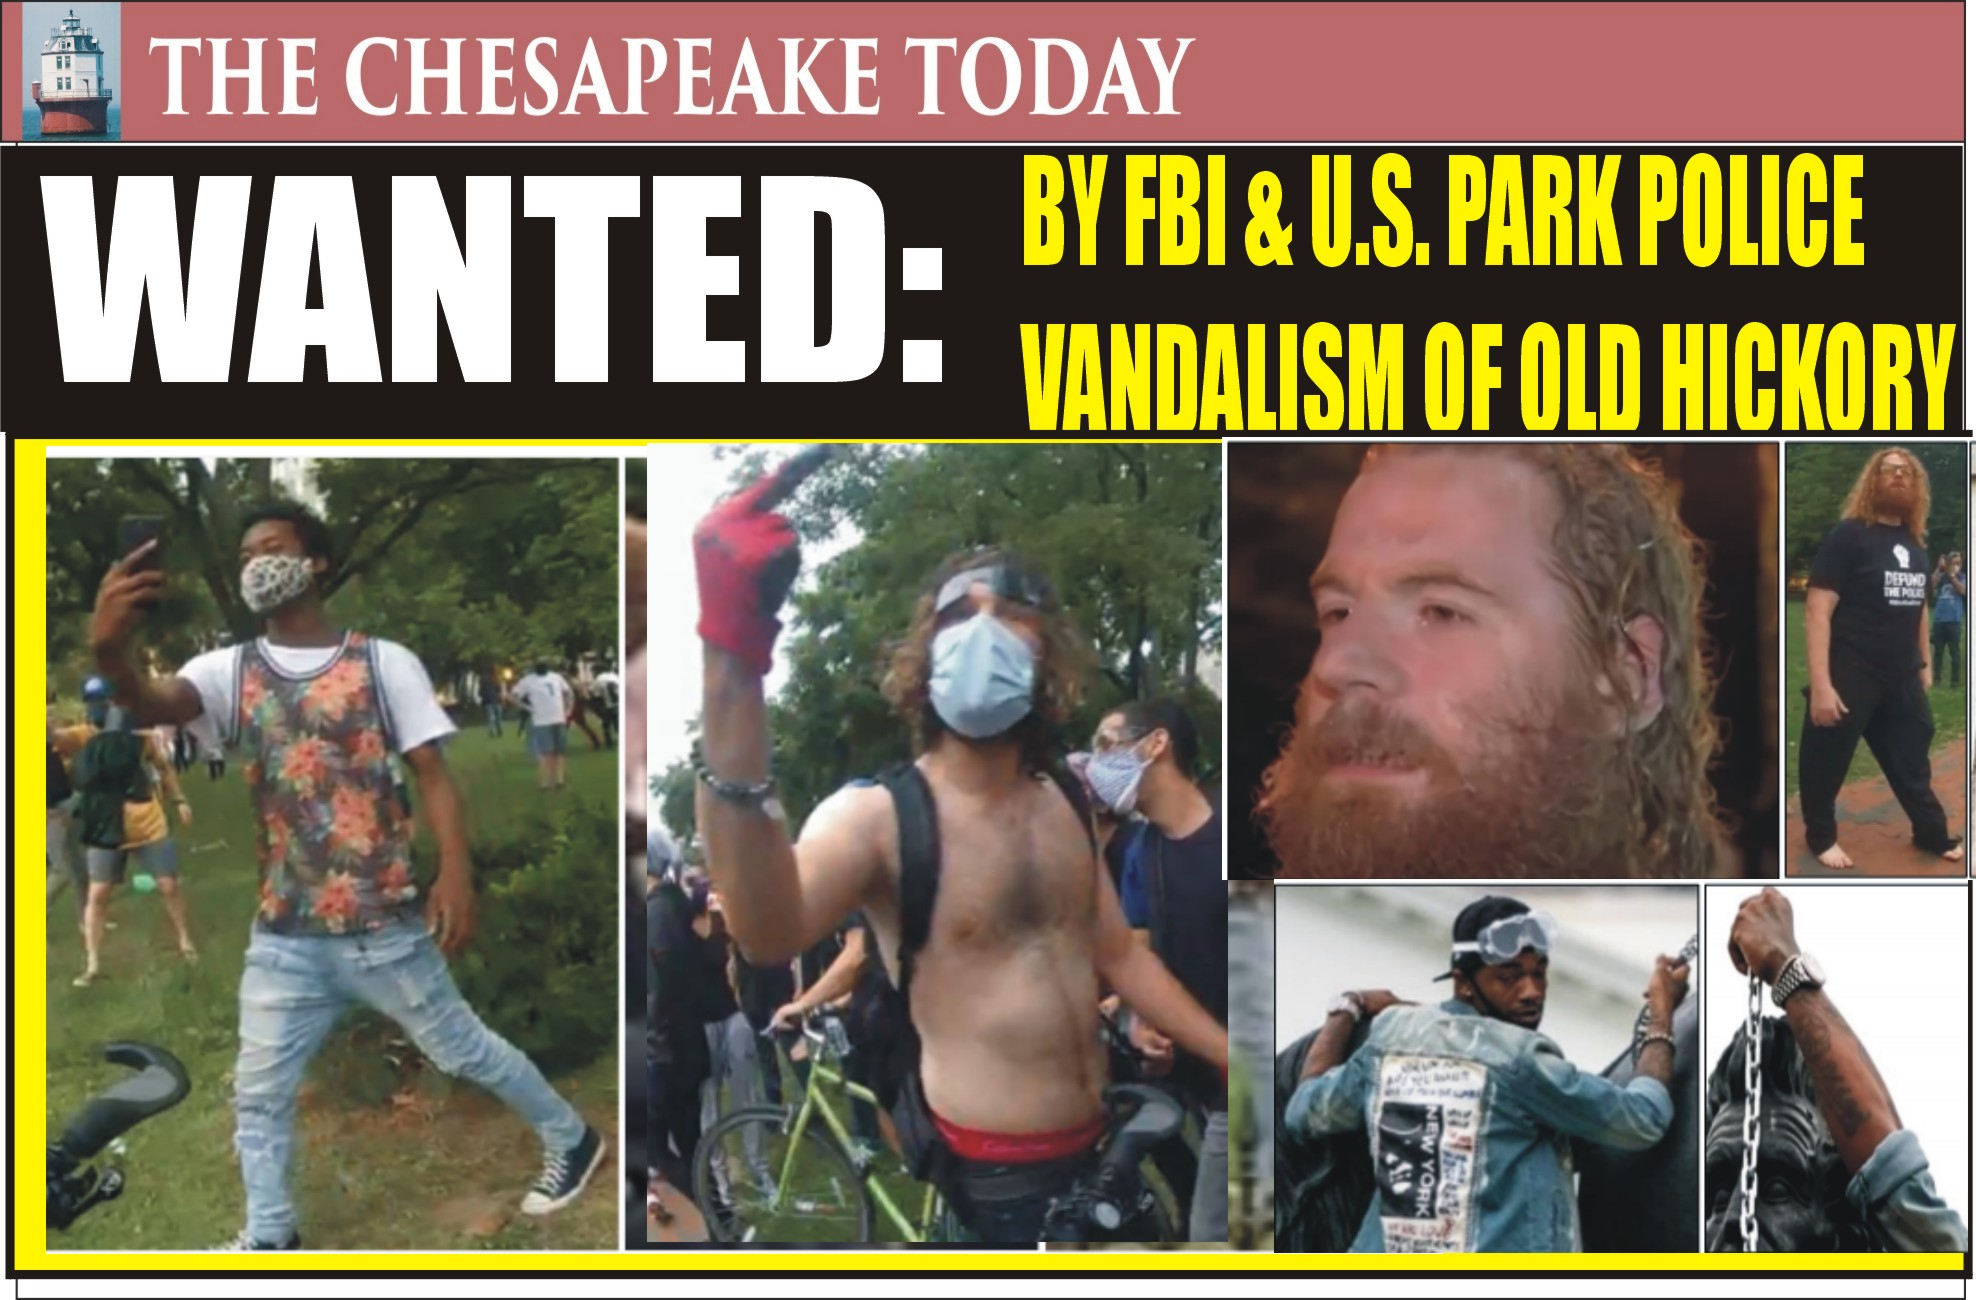 WANTED by the FBI for vandalizing the statue of President Andrew Jackson on June 22, 2020, in Lafayette Park